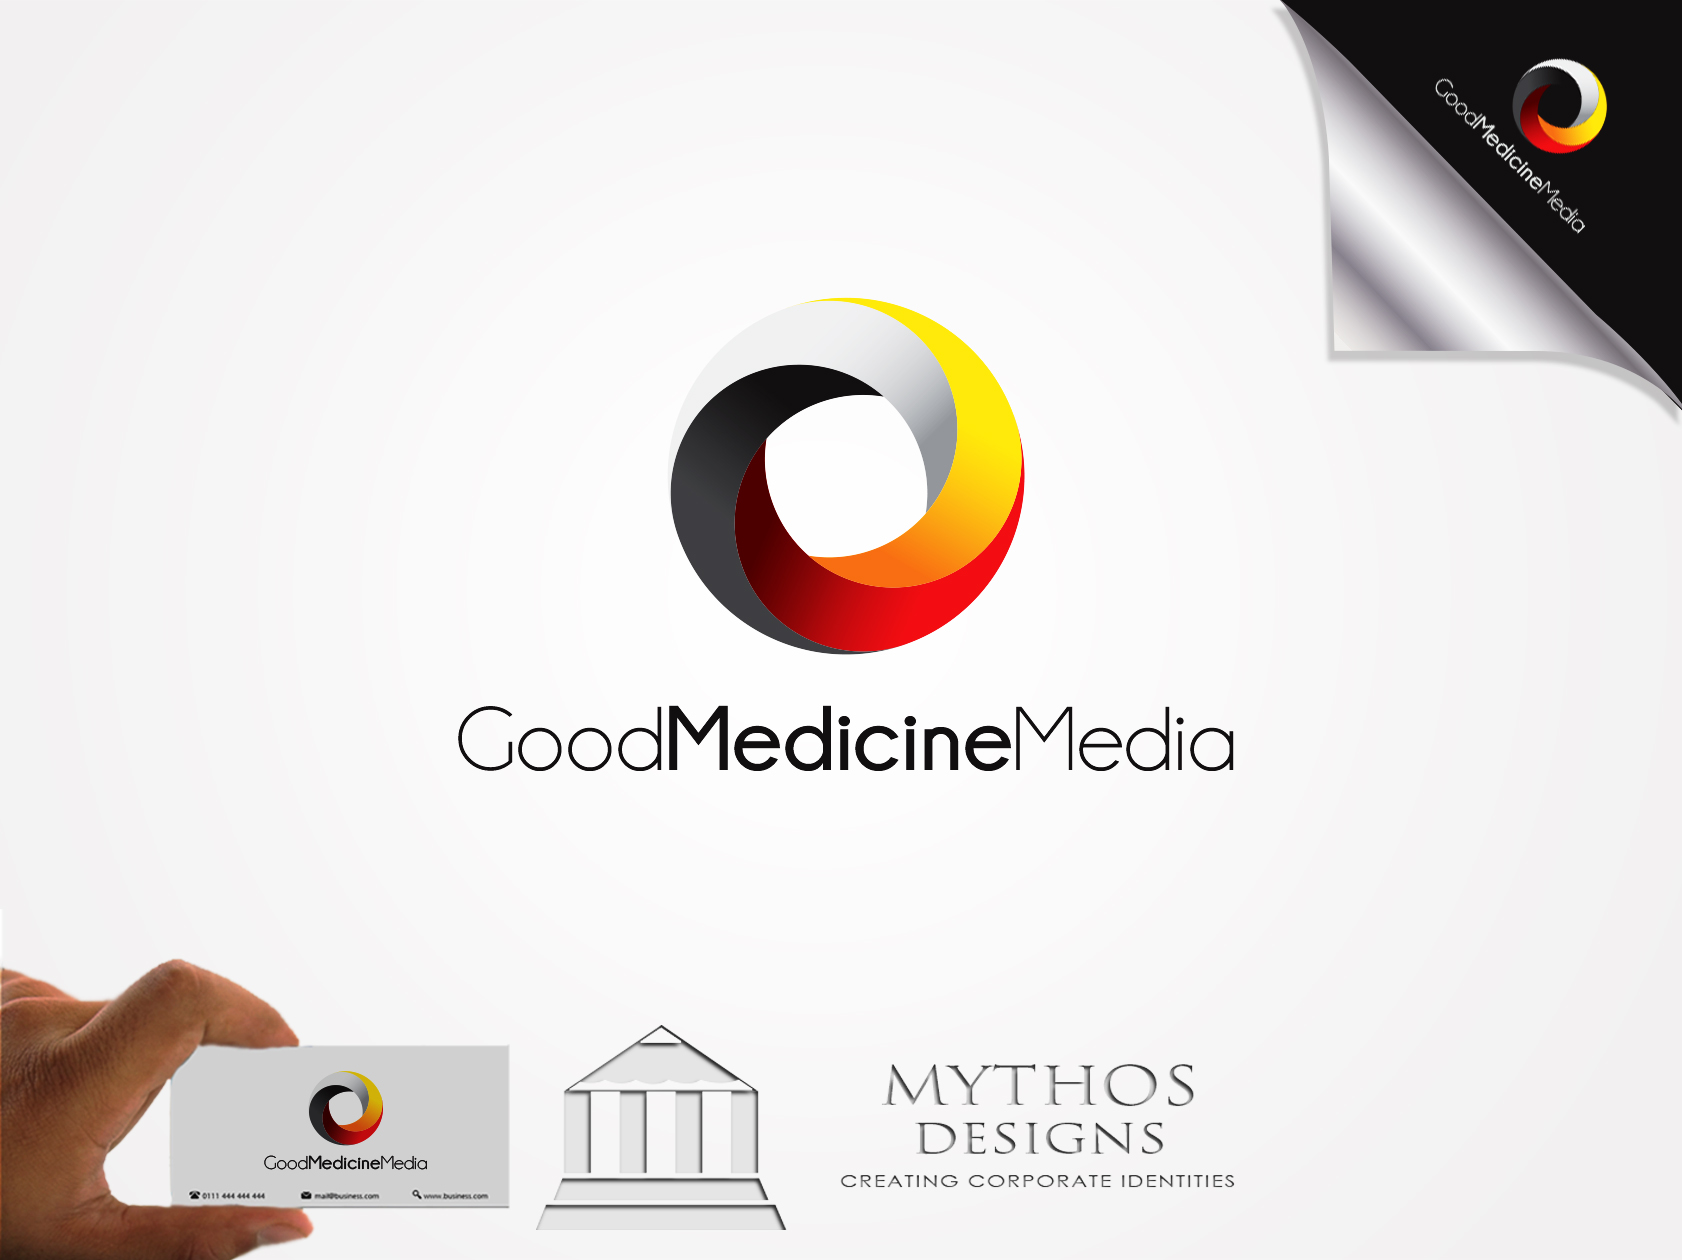 Logo Design by Mythos Designs - Entry No. 172 in the Logo Design Contest Good Medicine Media Logo Design.